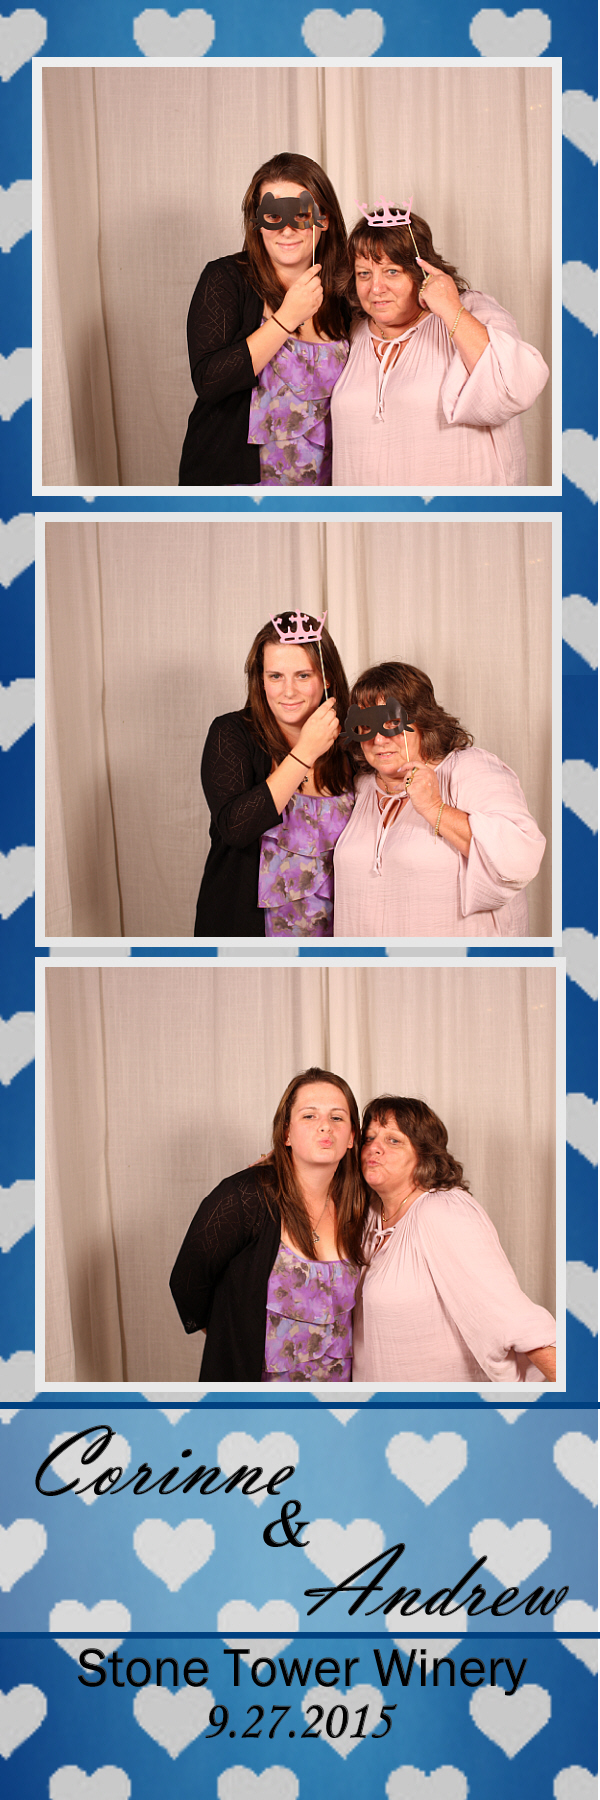 Guest House Events Photo Booth C&A (28).jpg